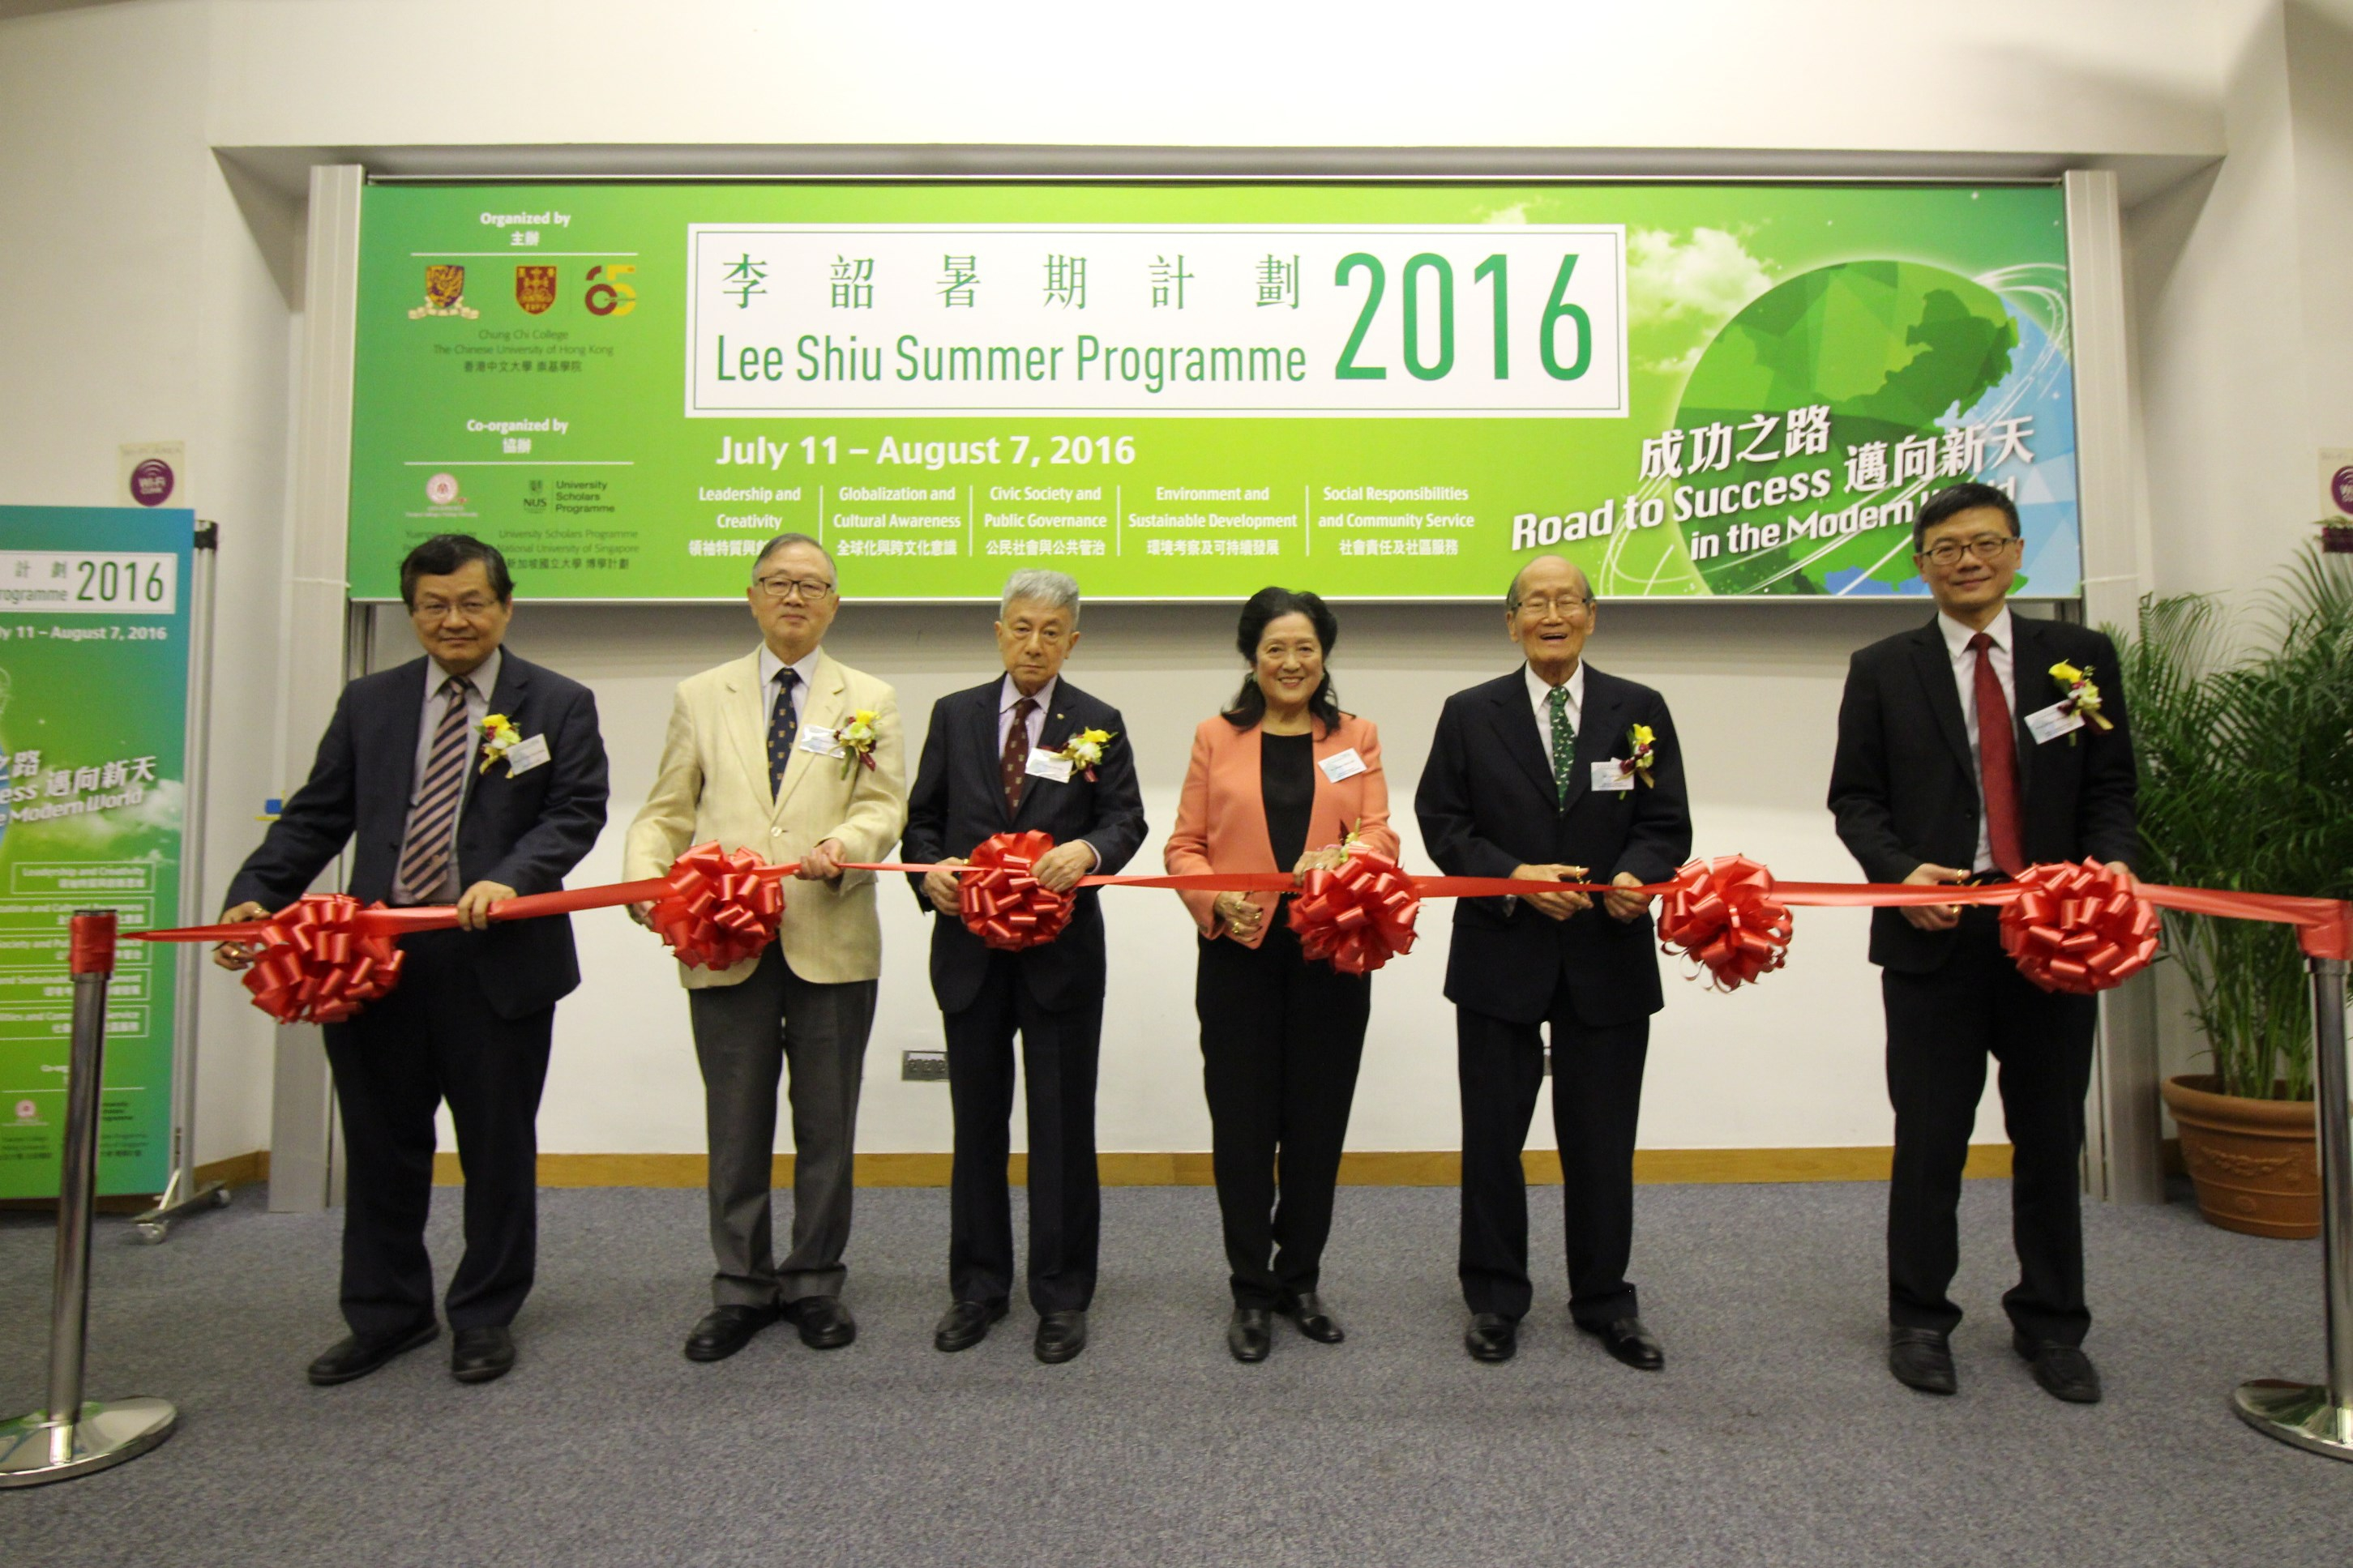 Officiating guests (from the left): Prof. Leung Yuen-sang, Prof. Rance P.L. Lee, Dr. George Hung Hon-cheung, Dr. Jennie Mui Lee, Dr. Lee Shiu and Prof. Fong Wing-ping